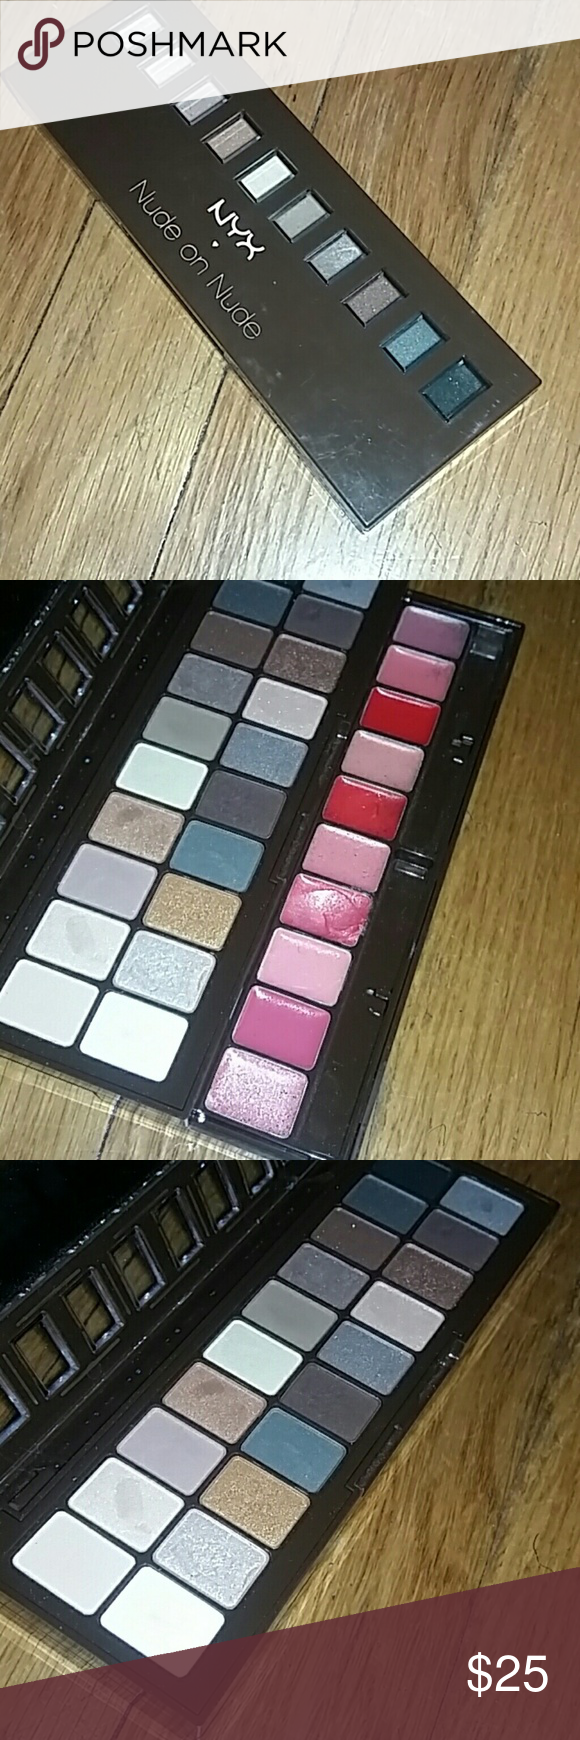 NYX Nude on Nude Eyeshadow & Lip Palette Realatively New. Used once. Had been disinfected. This palette is a more affordable version of the Naked Palette. The shadows are very pigmented and can create looks similar or the same of the Naked Palette. No Trades! Price Firm! 100% Authentic! NYX Makeup Eyeshadow